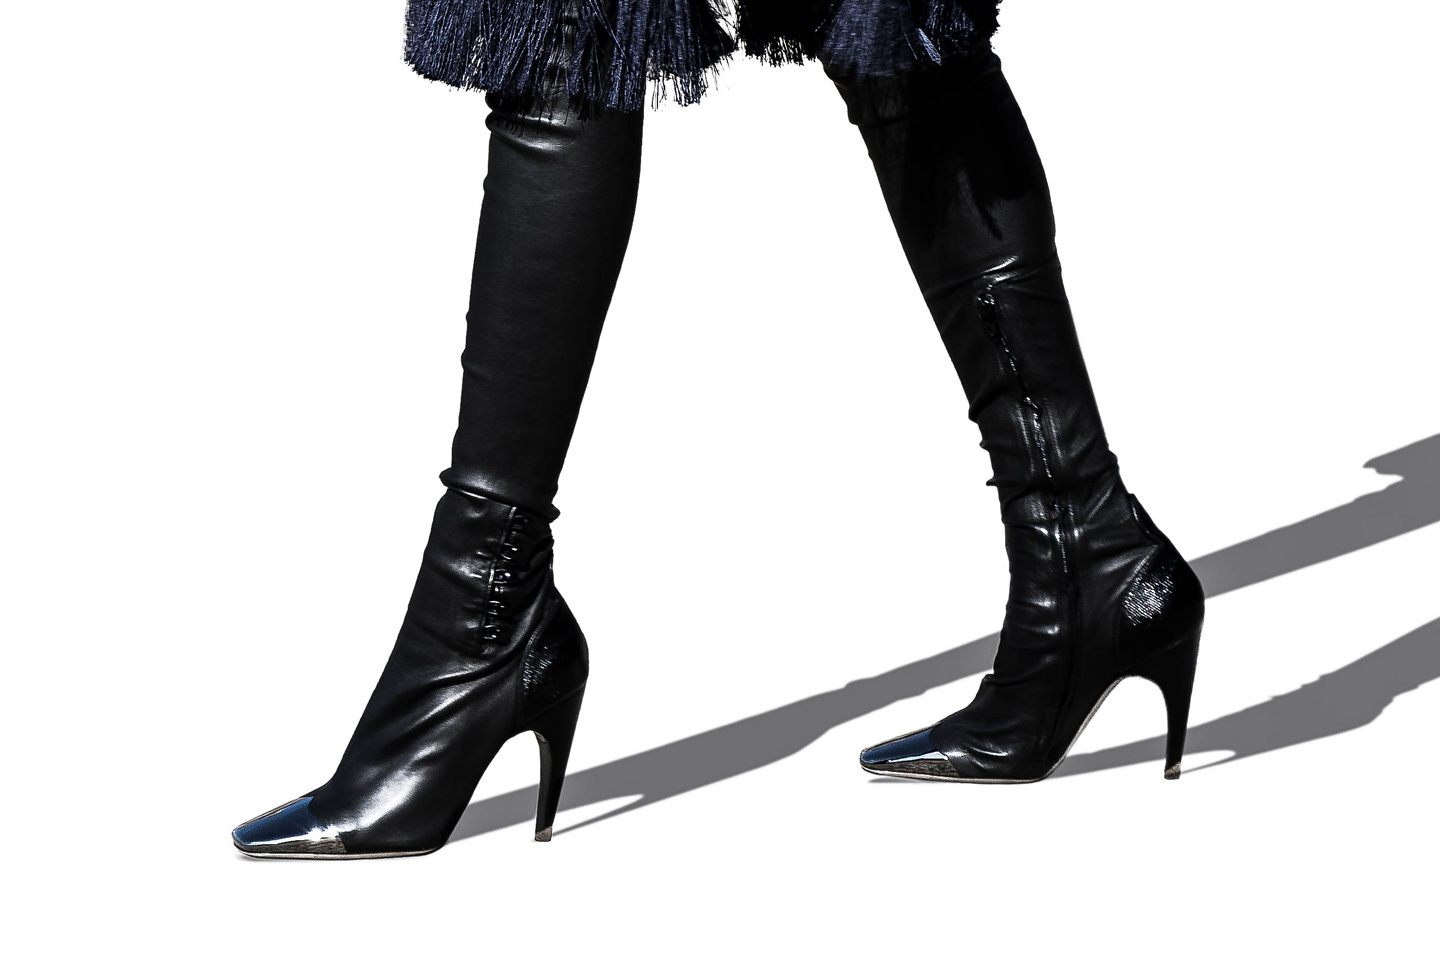 French Photographer Fashion Photography Ireneisgood wears Nina ricci Over-the-Knee Leather Boots